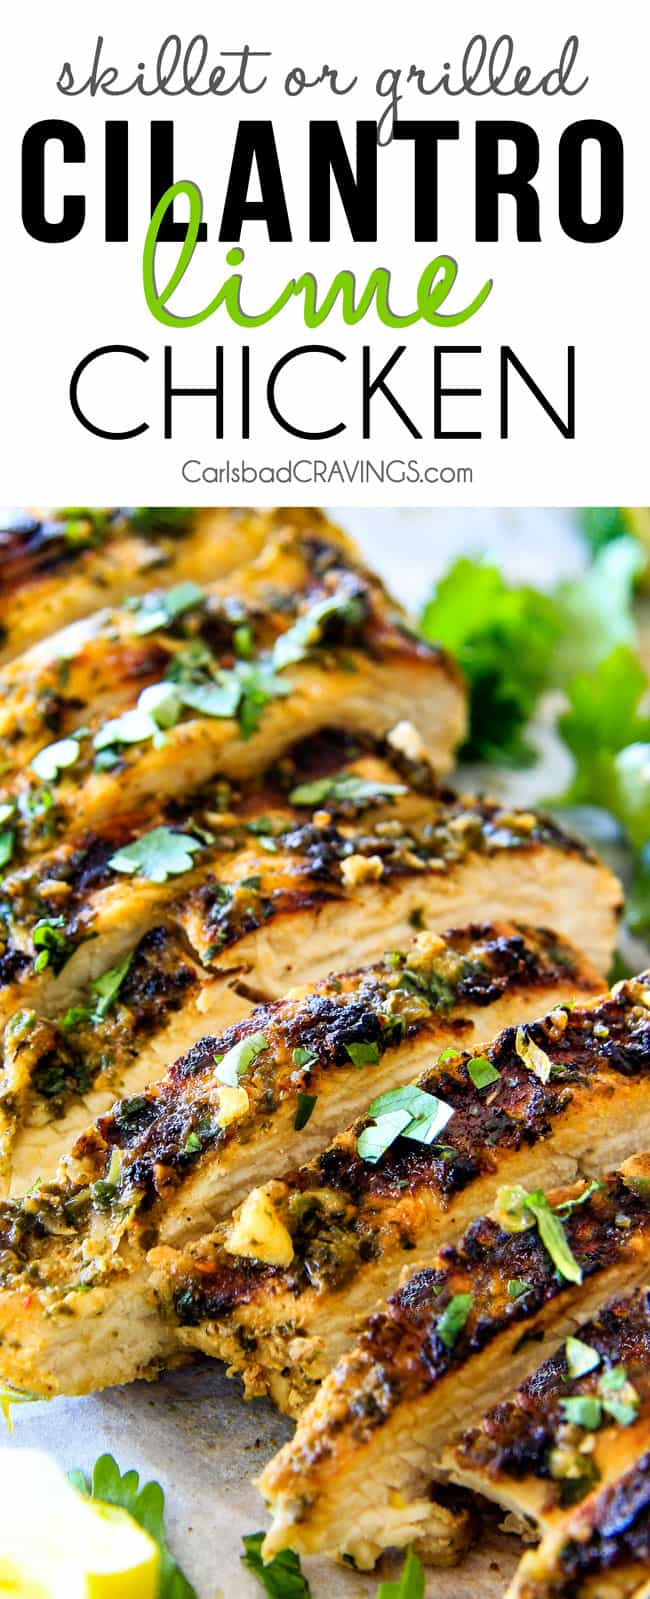 Easy, juicy, flavorful Cilantro Lime Chicken seeping with flavor is a meal in itself or instantly transforms salads, tacos, burritos, wraps, etc into the most epic meal EVER! I love having this chicken on hand!